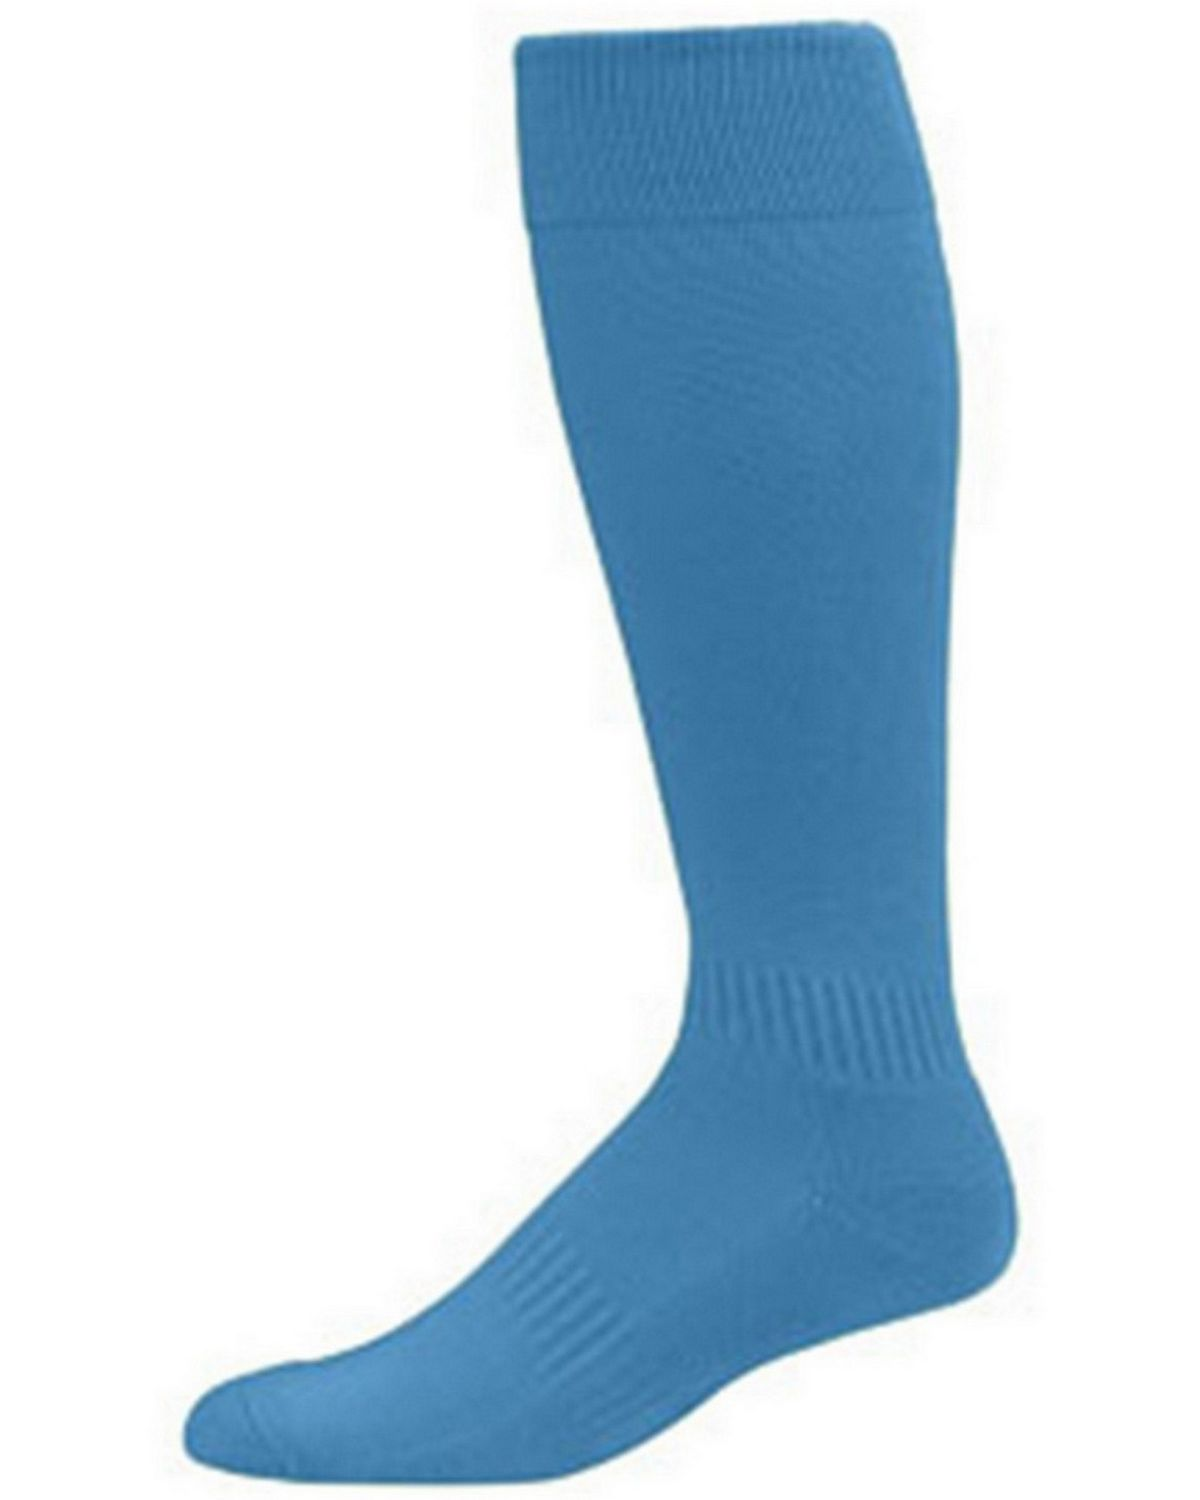 Augusta Sportswear 6007 Adult Multi-Sport Sock - Columbia Blue - 10-13 6007